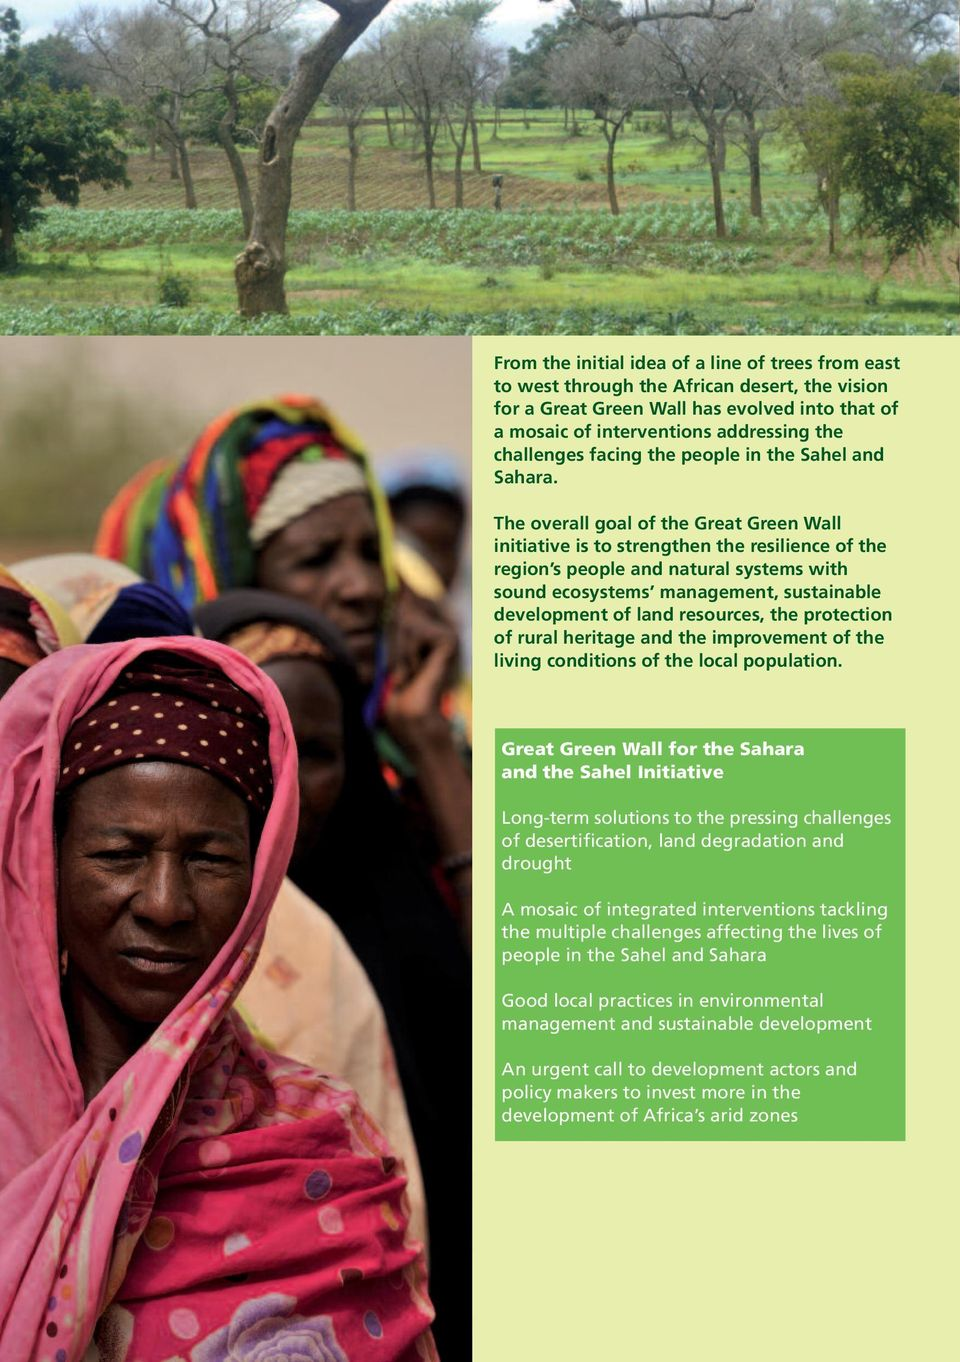 The overall goal of the Great Green Wall initiative is to strengthen the resilience of the region s people and natural systems with sound ecosystems management, sustainable development of land